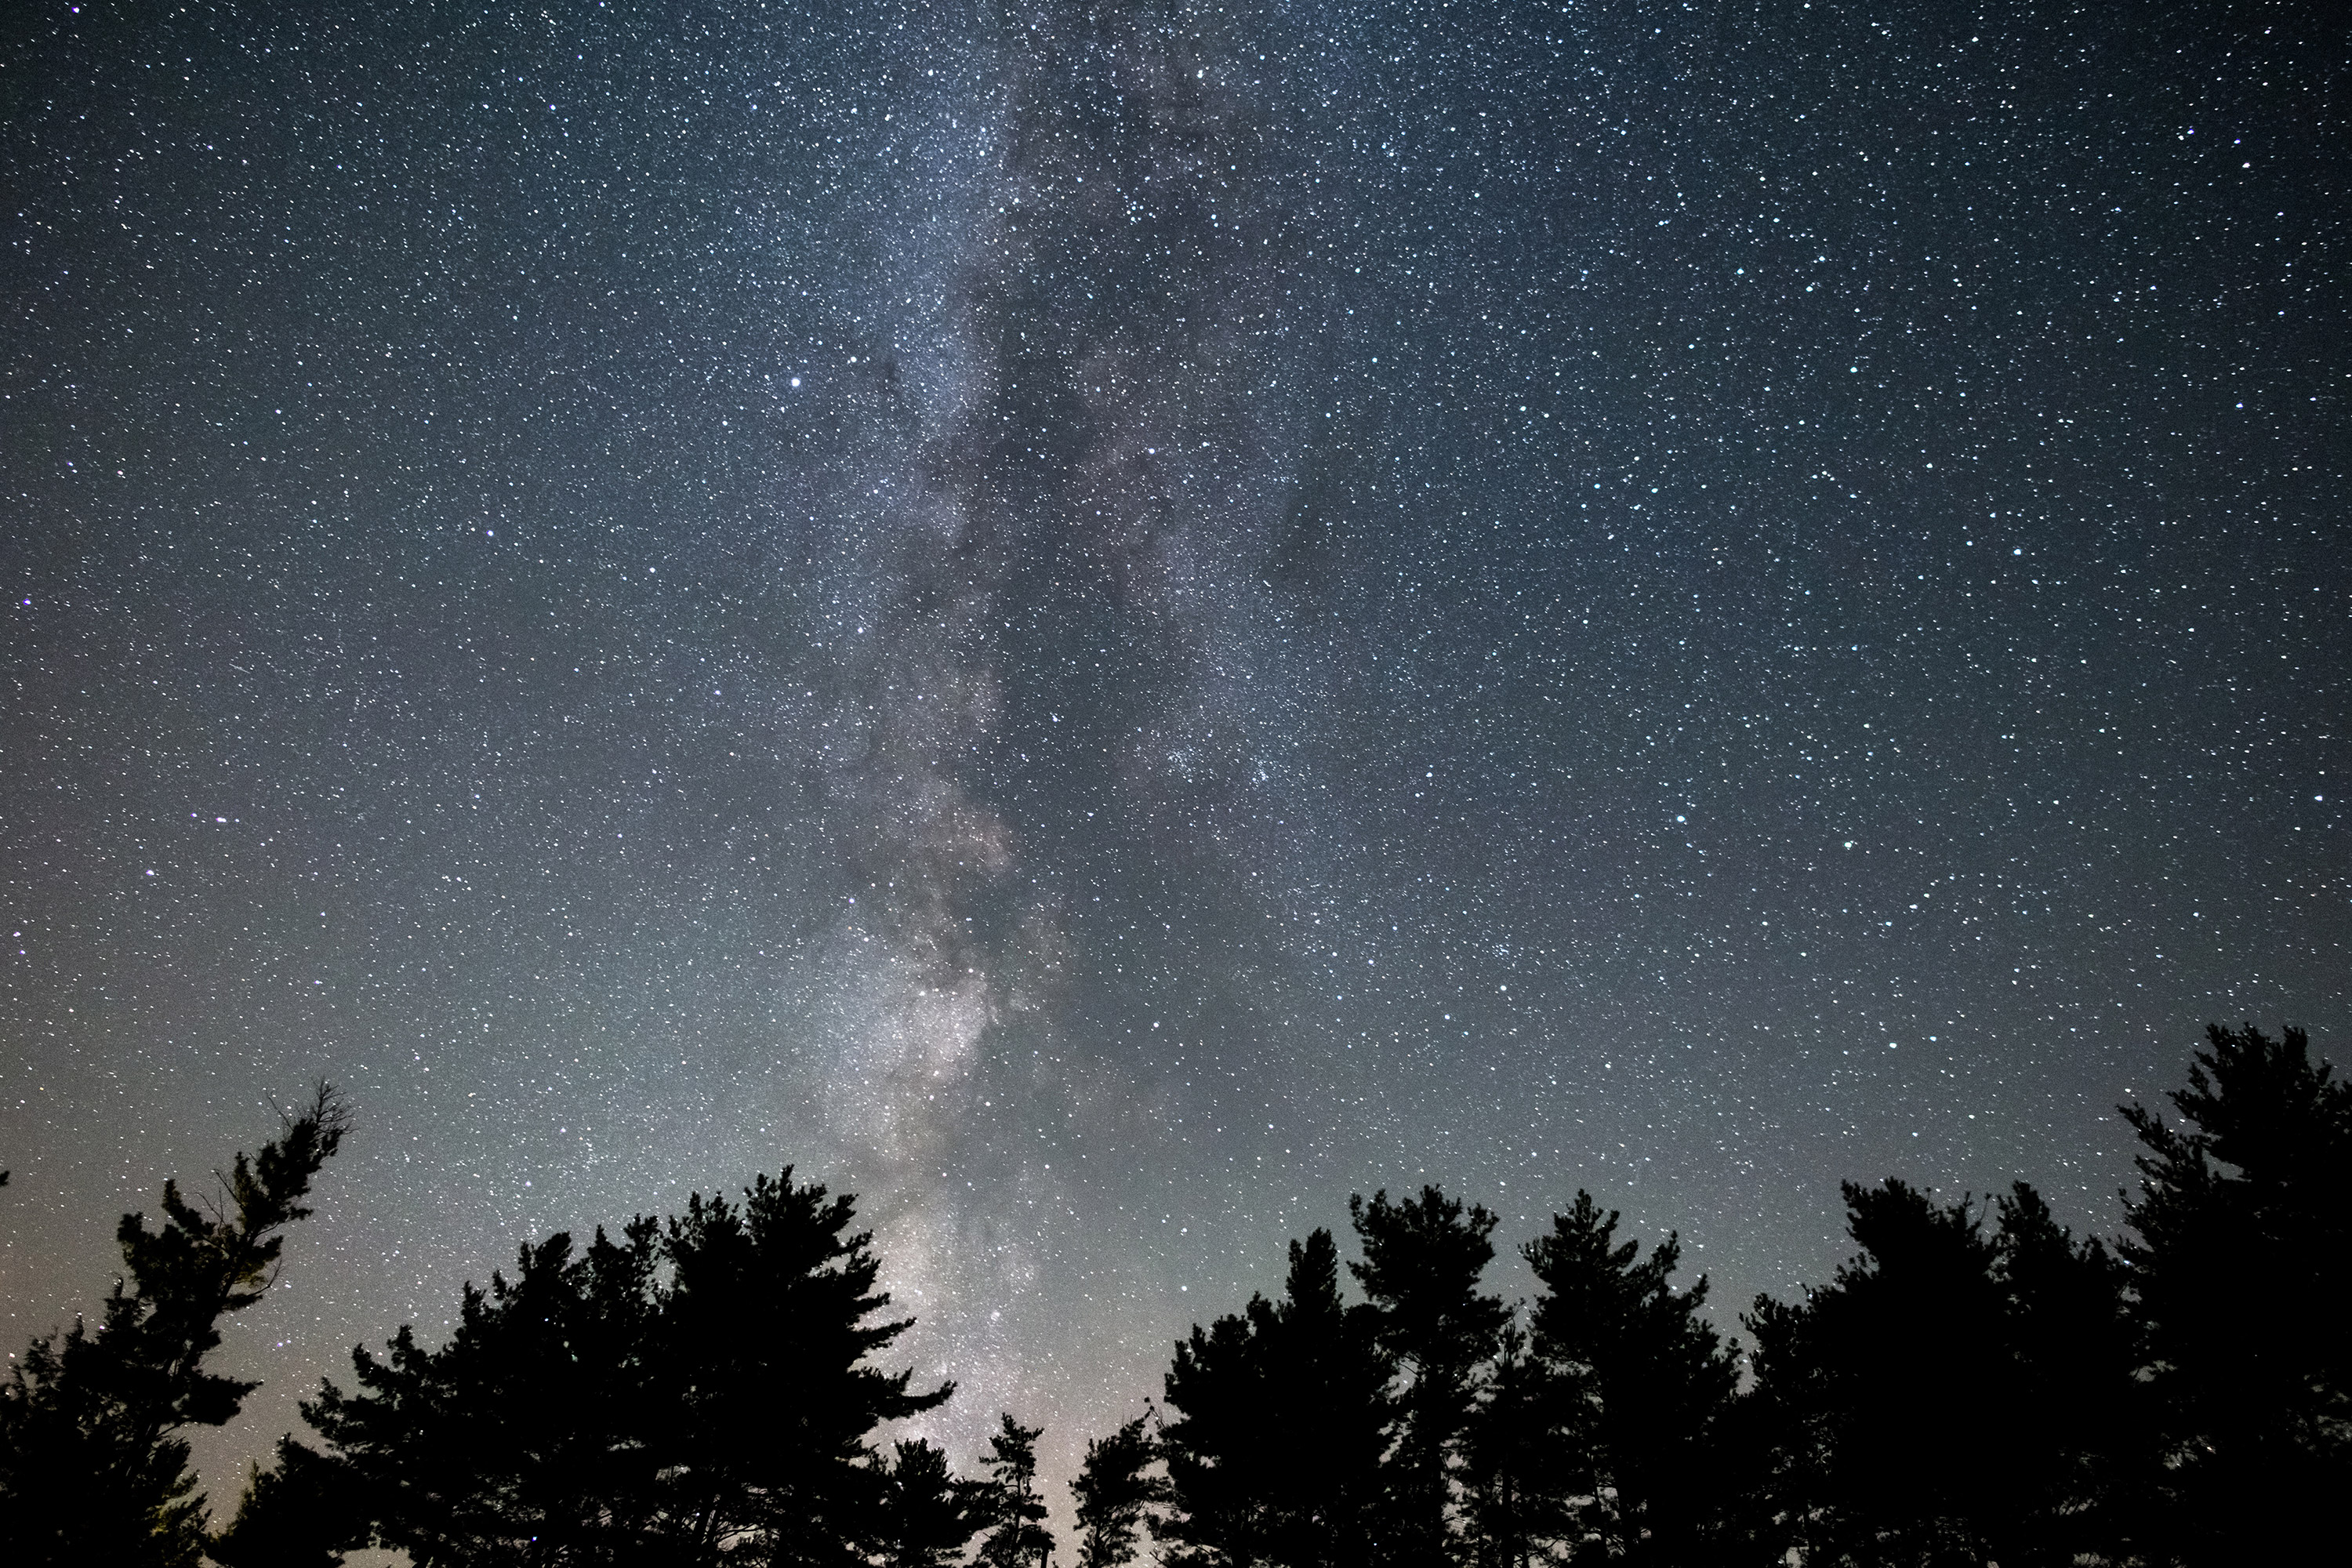 Milky Way Tree Silhouettes Picography Free Photo